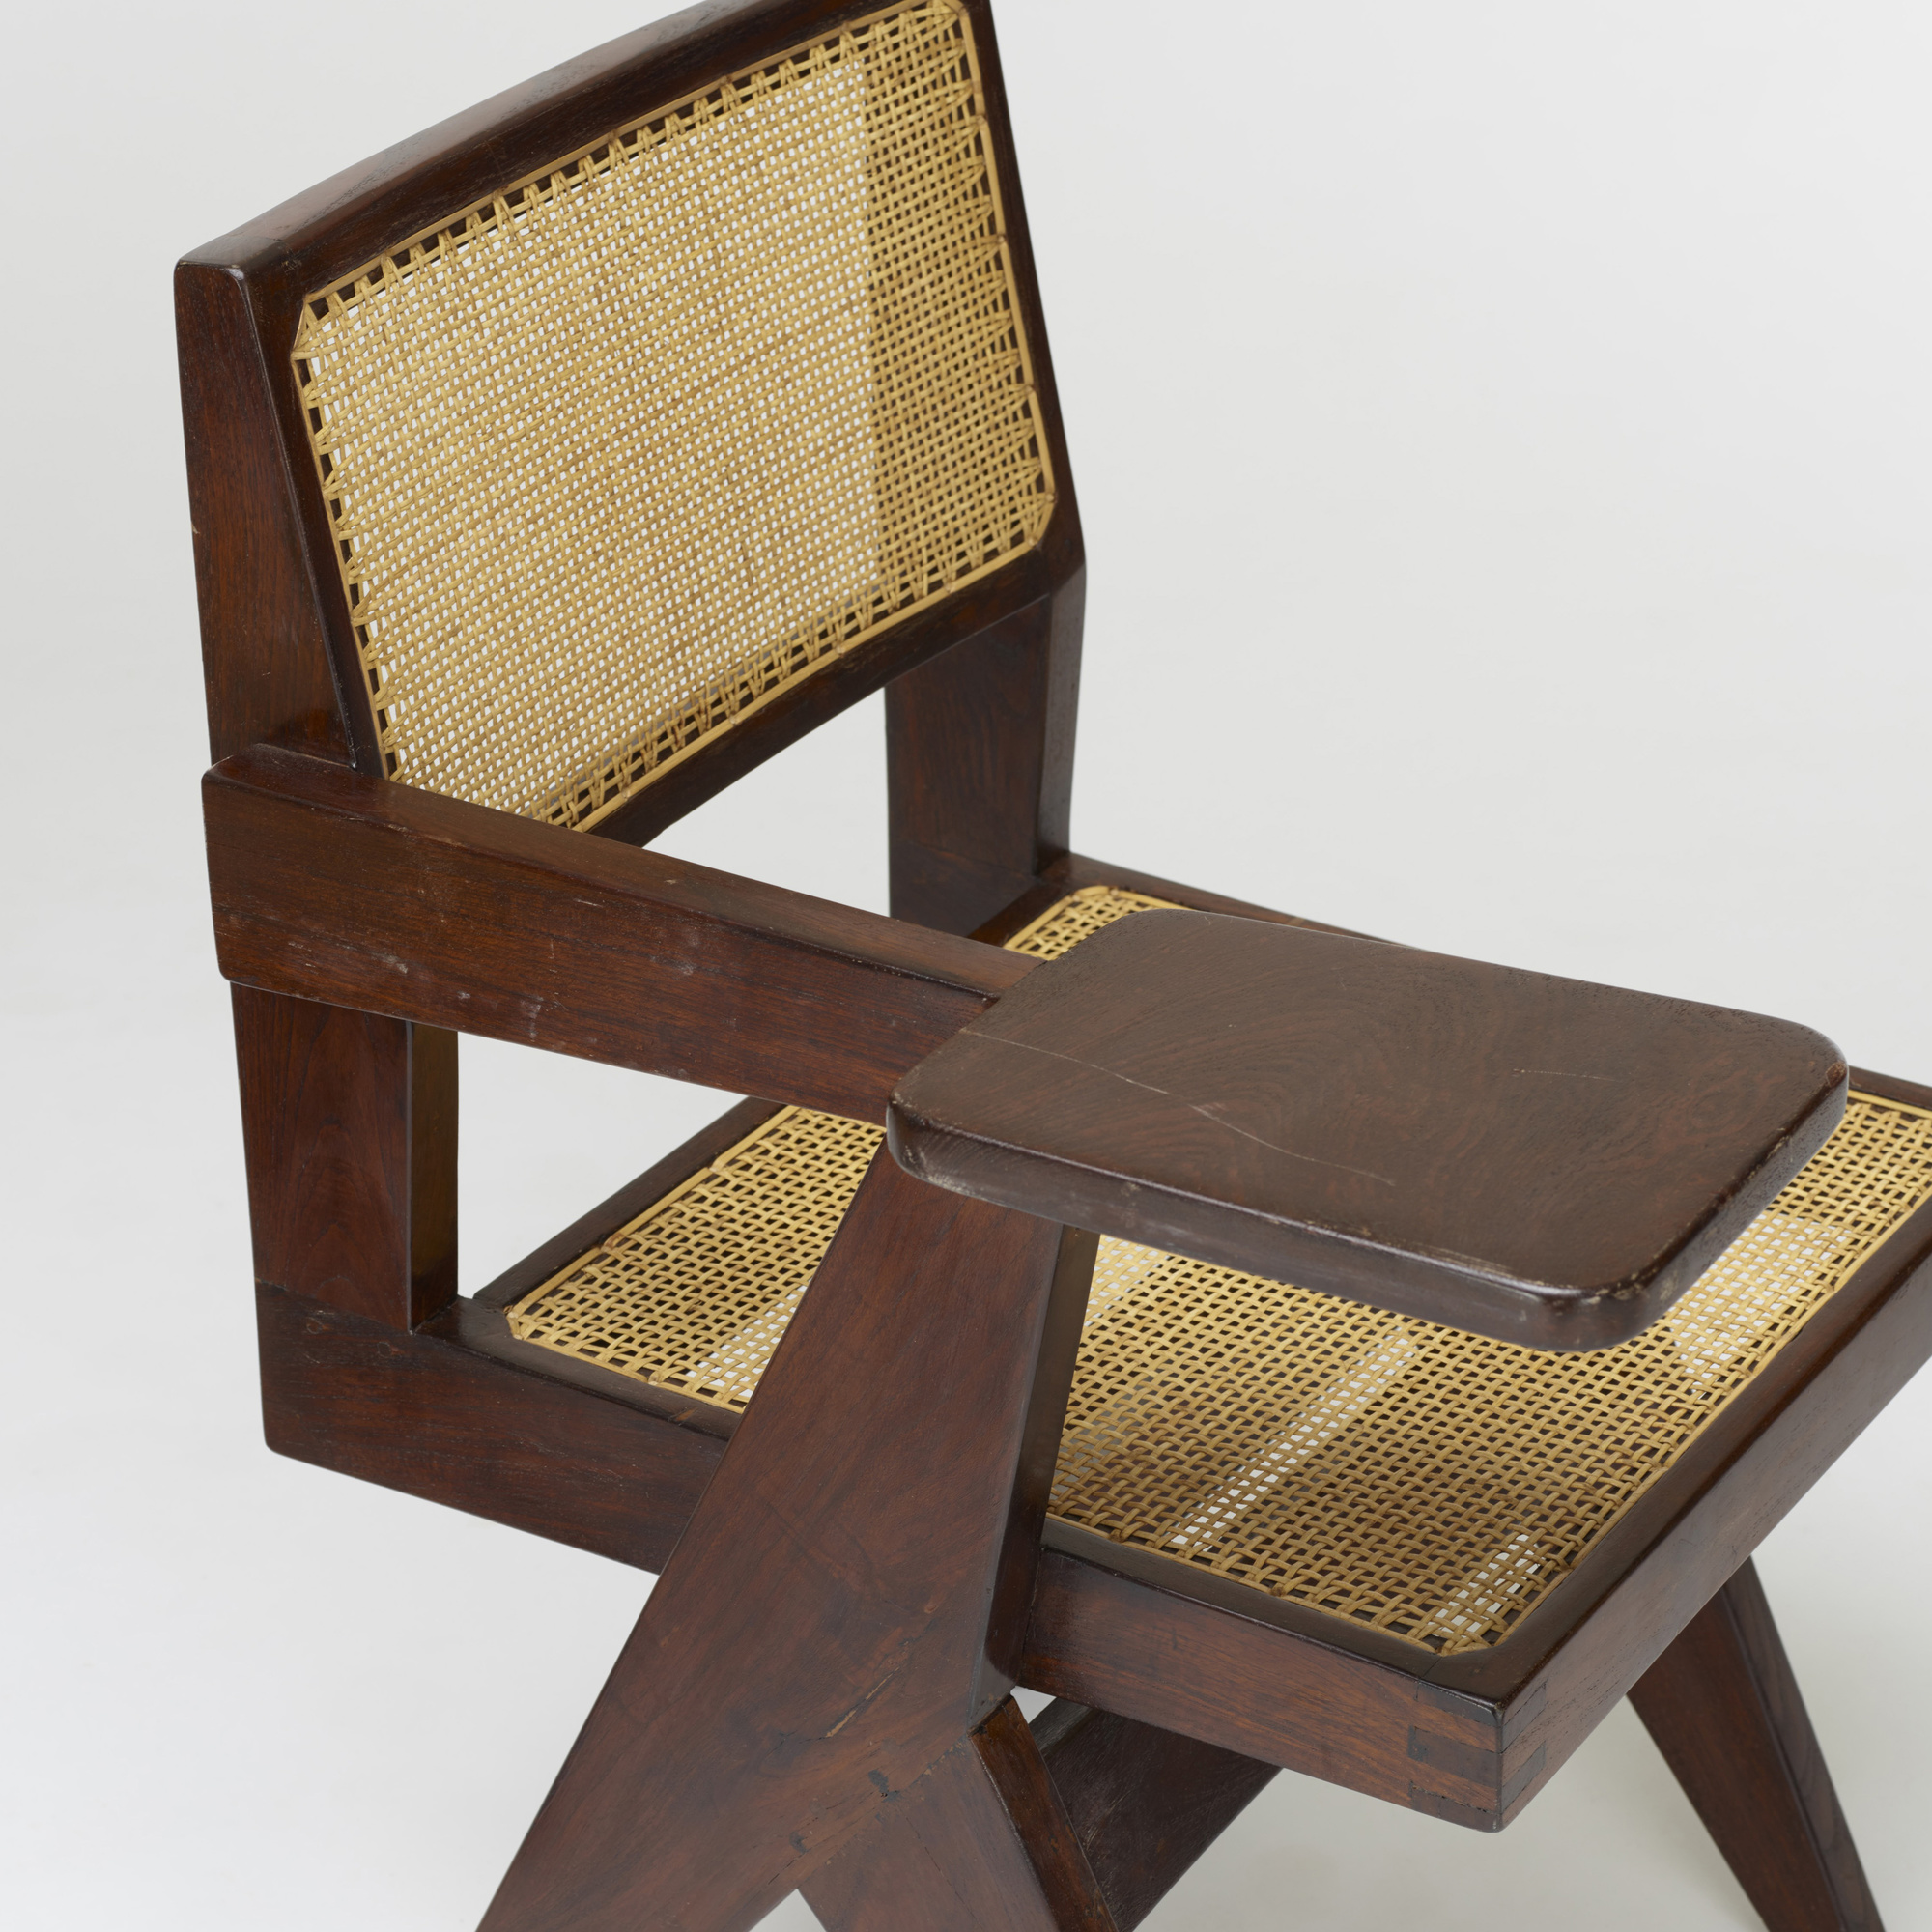 106: Pierre Jeanneret / pair of writing chairs from Chandigarh (3 of 3)